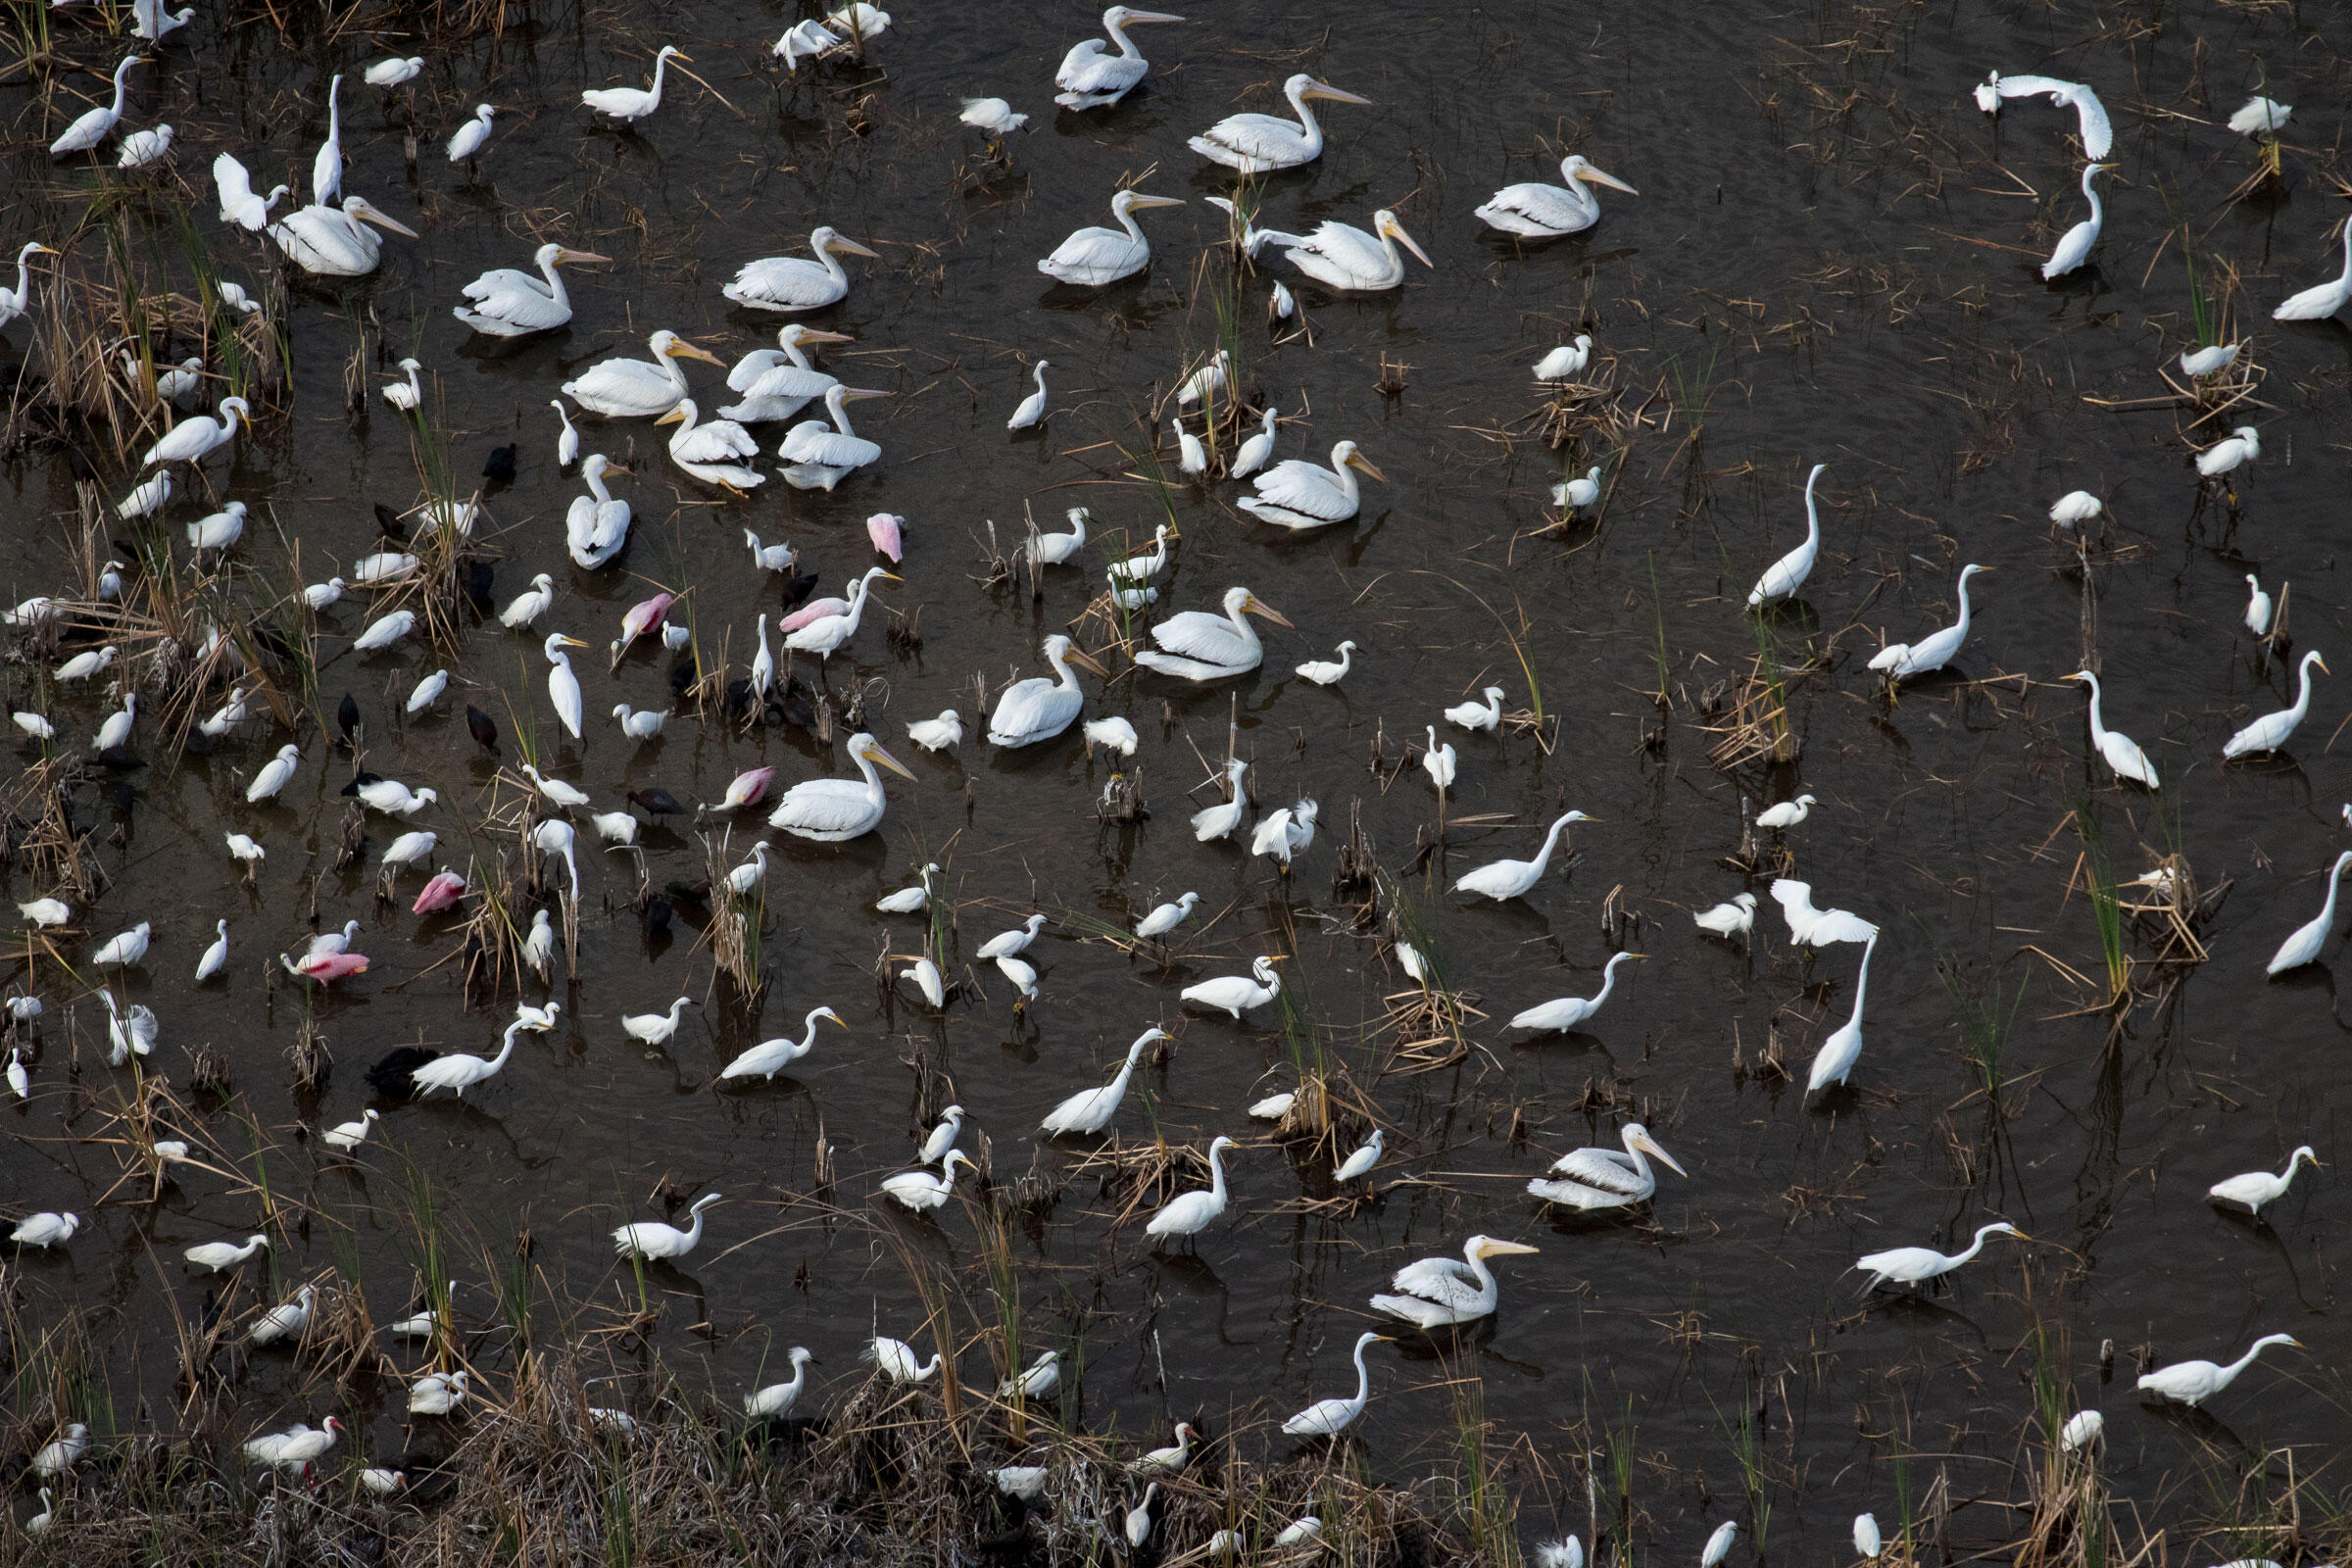 In the Water Conservation Area of the central Everglades, hundreds of wading birds including Roseate Spoonbills and American White Pelicans forage during nesting season. Mac Stone